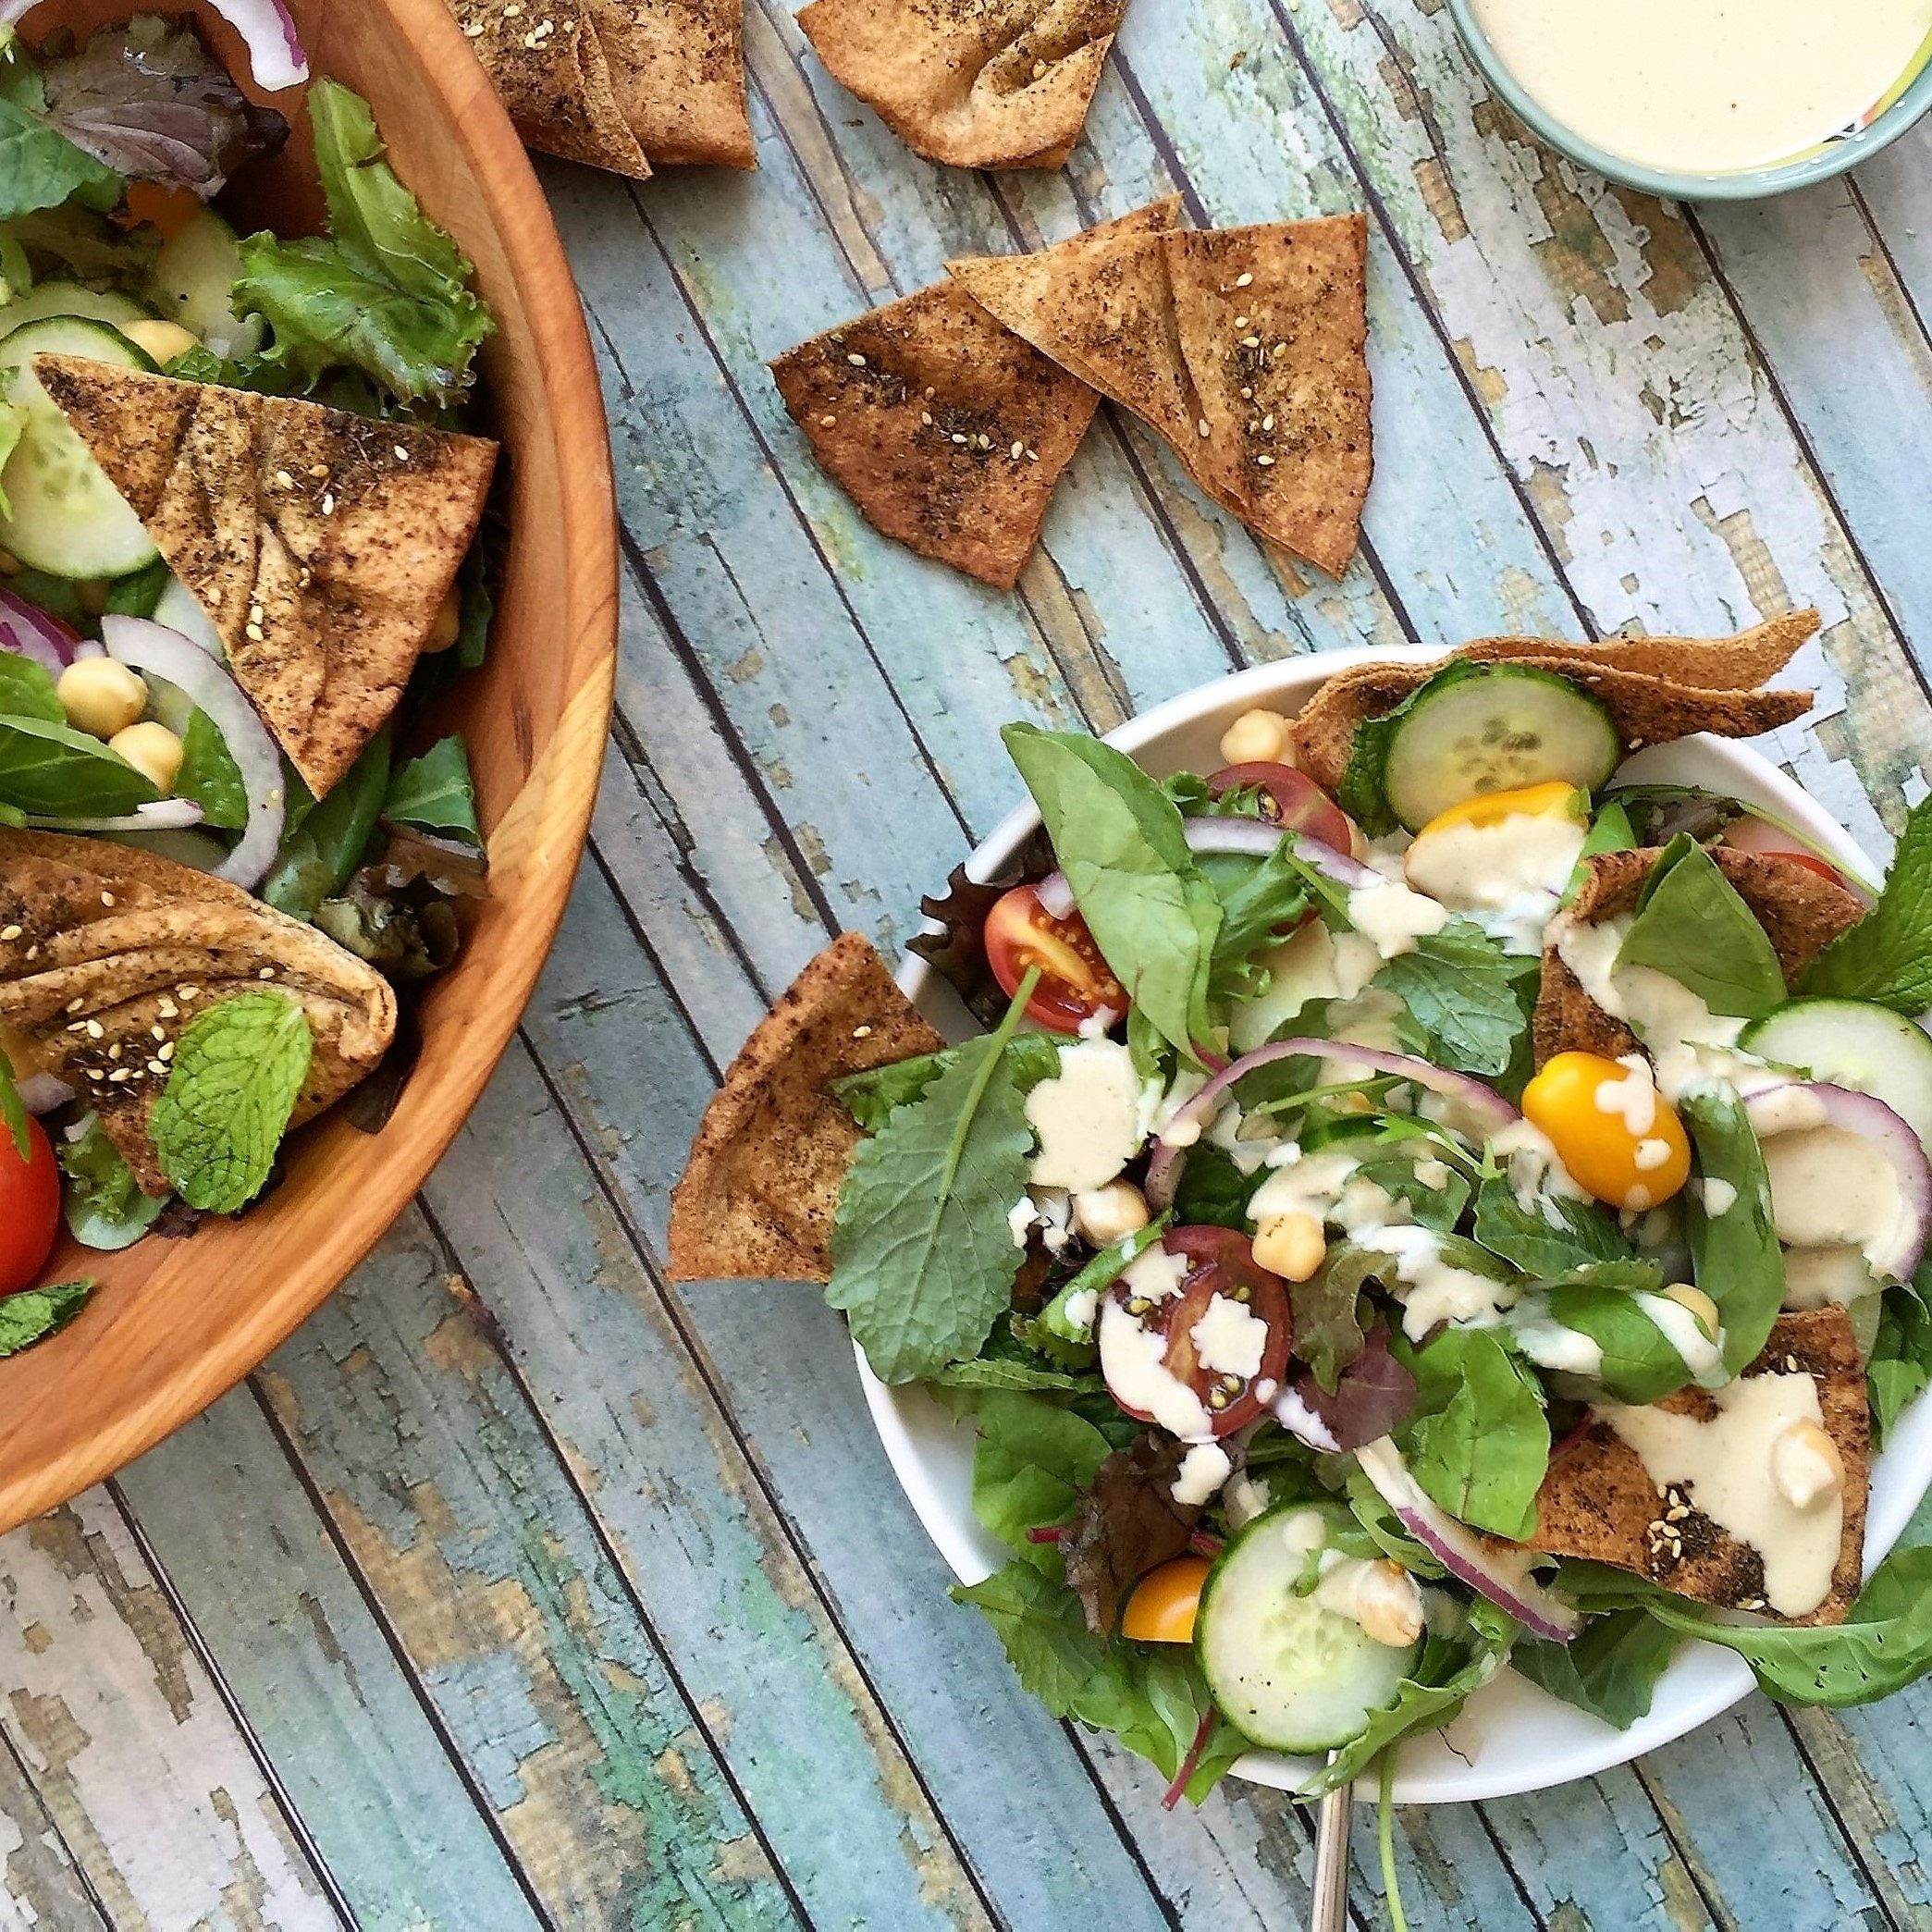 lebanese salad with lemony tahini dressing and za'atar pita chips